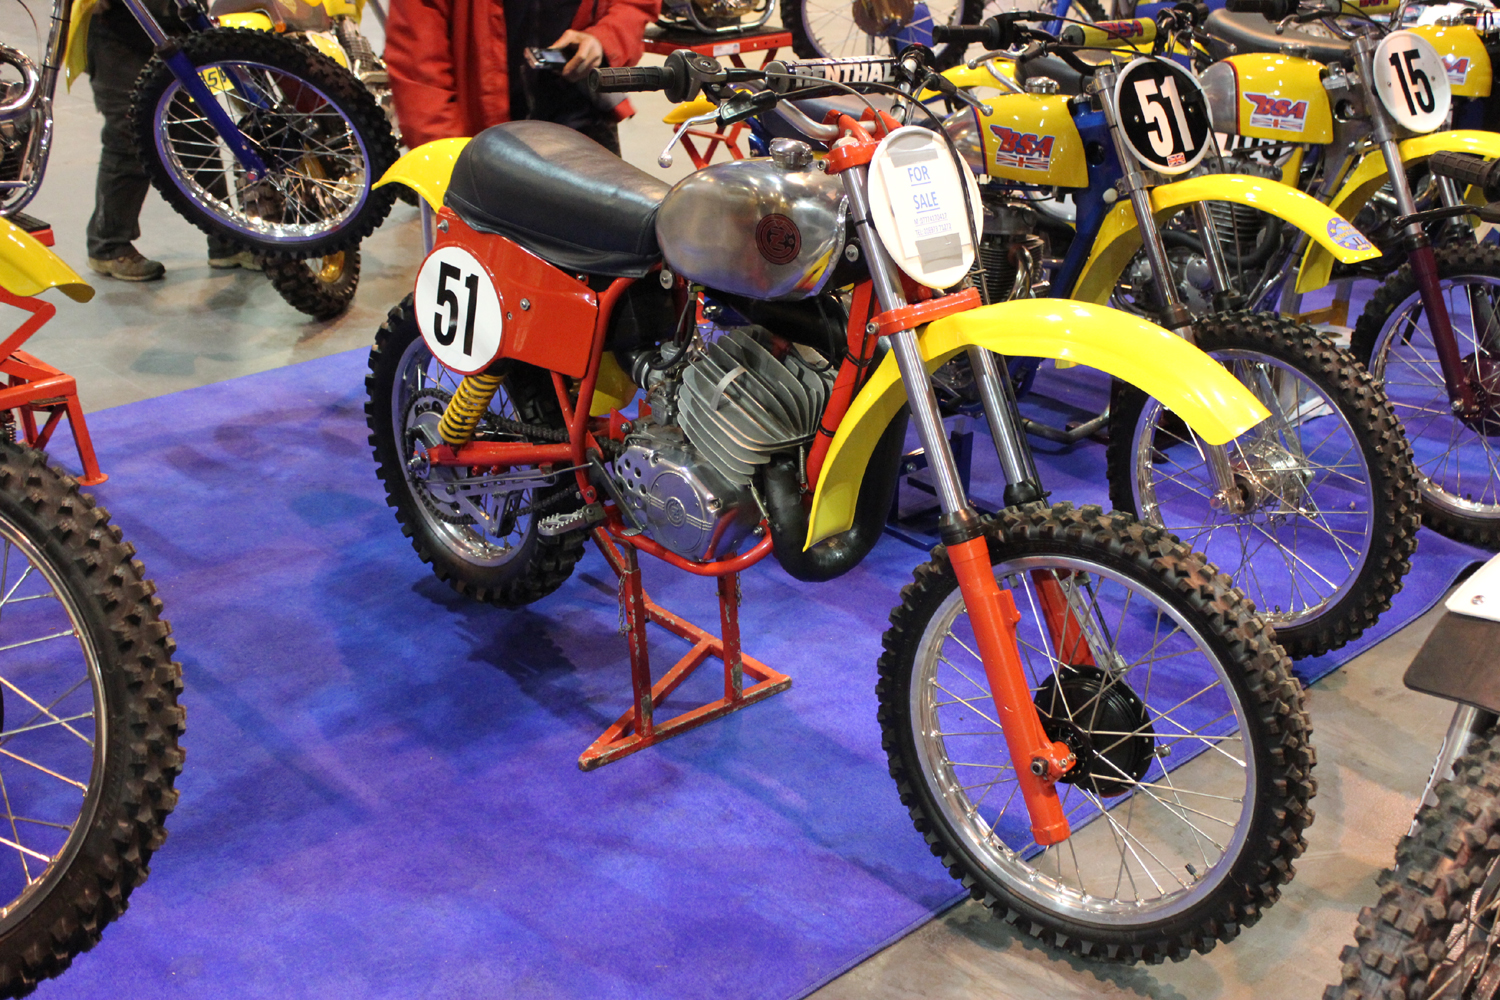 classicdirtbikerider.com-photo by Mr J-2015 Telford classic dirt bike show-TWINSHOCK CZ MOTOCROSS